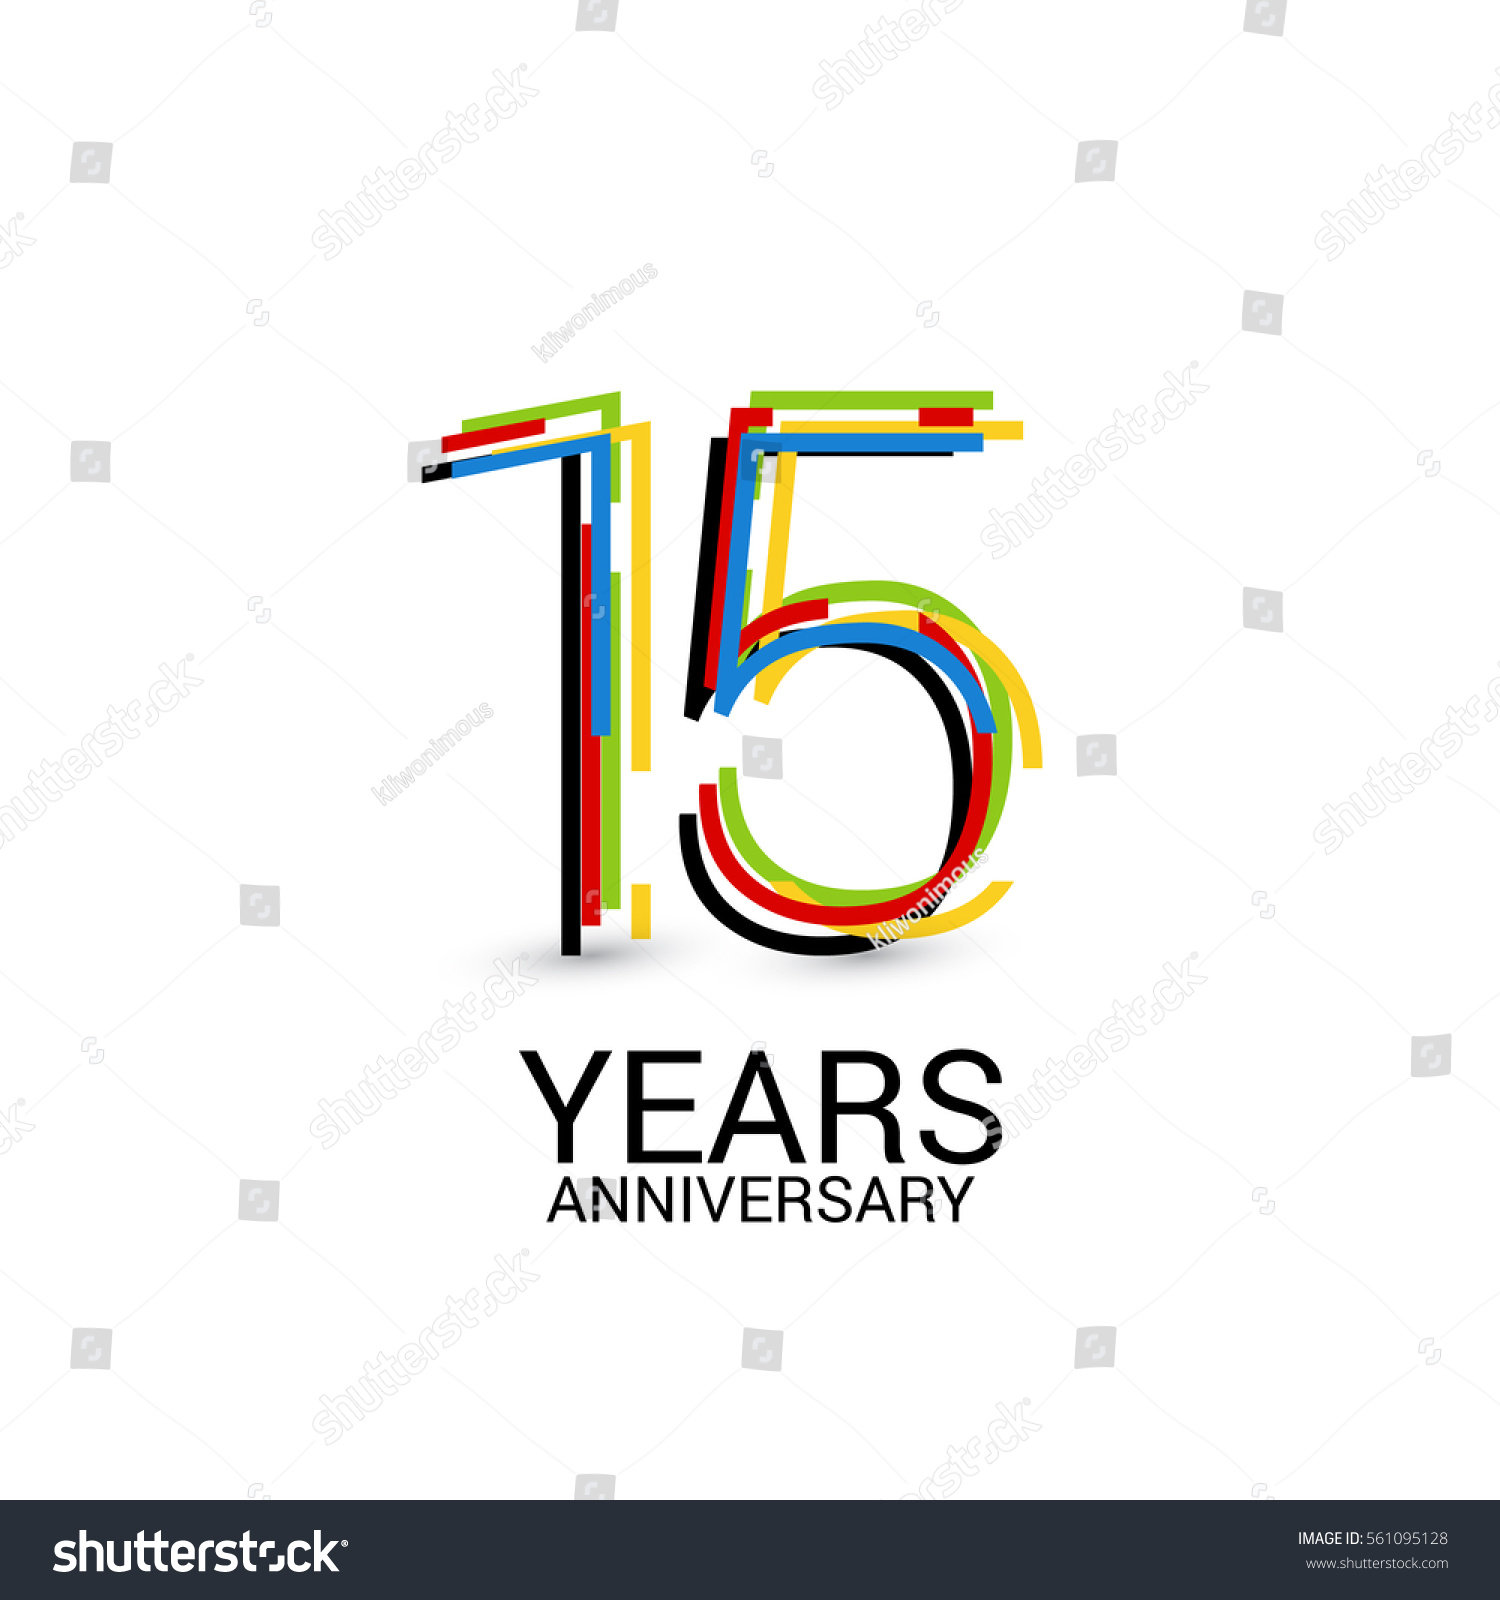 15 years anniversary colorful logo celebration stock vector 15 years anniversary colorful logo celebration isolated on white background biocorpaavc